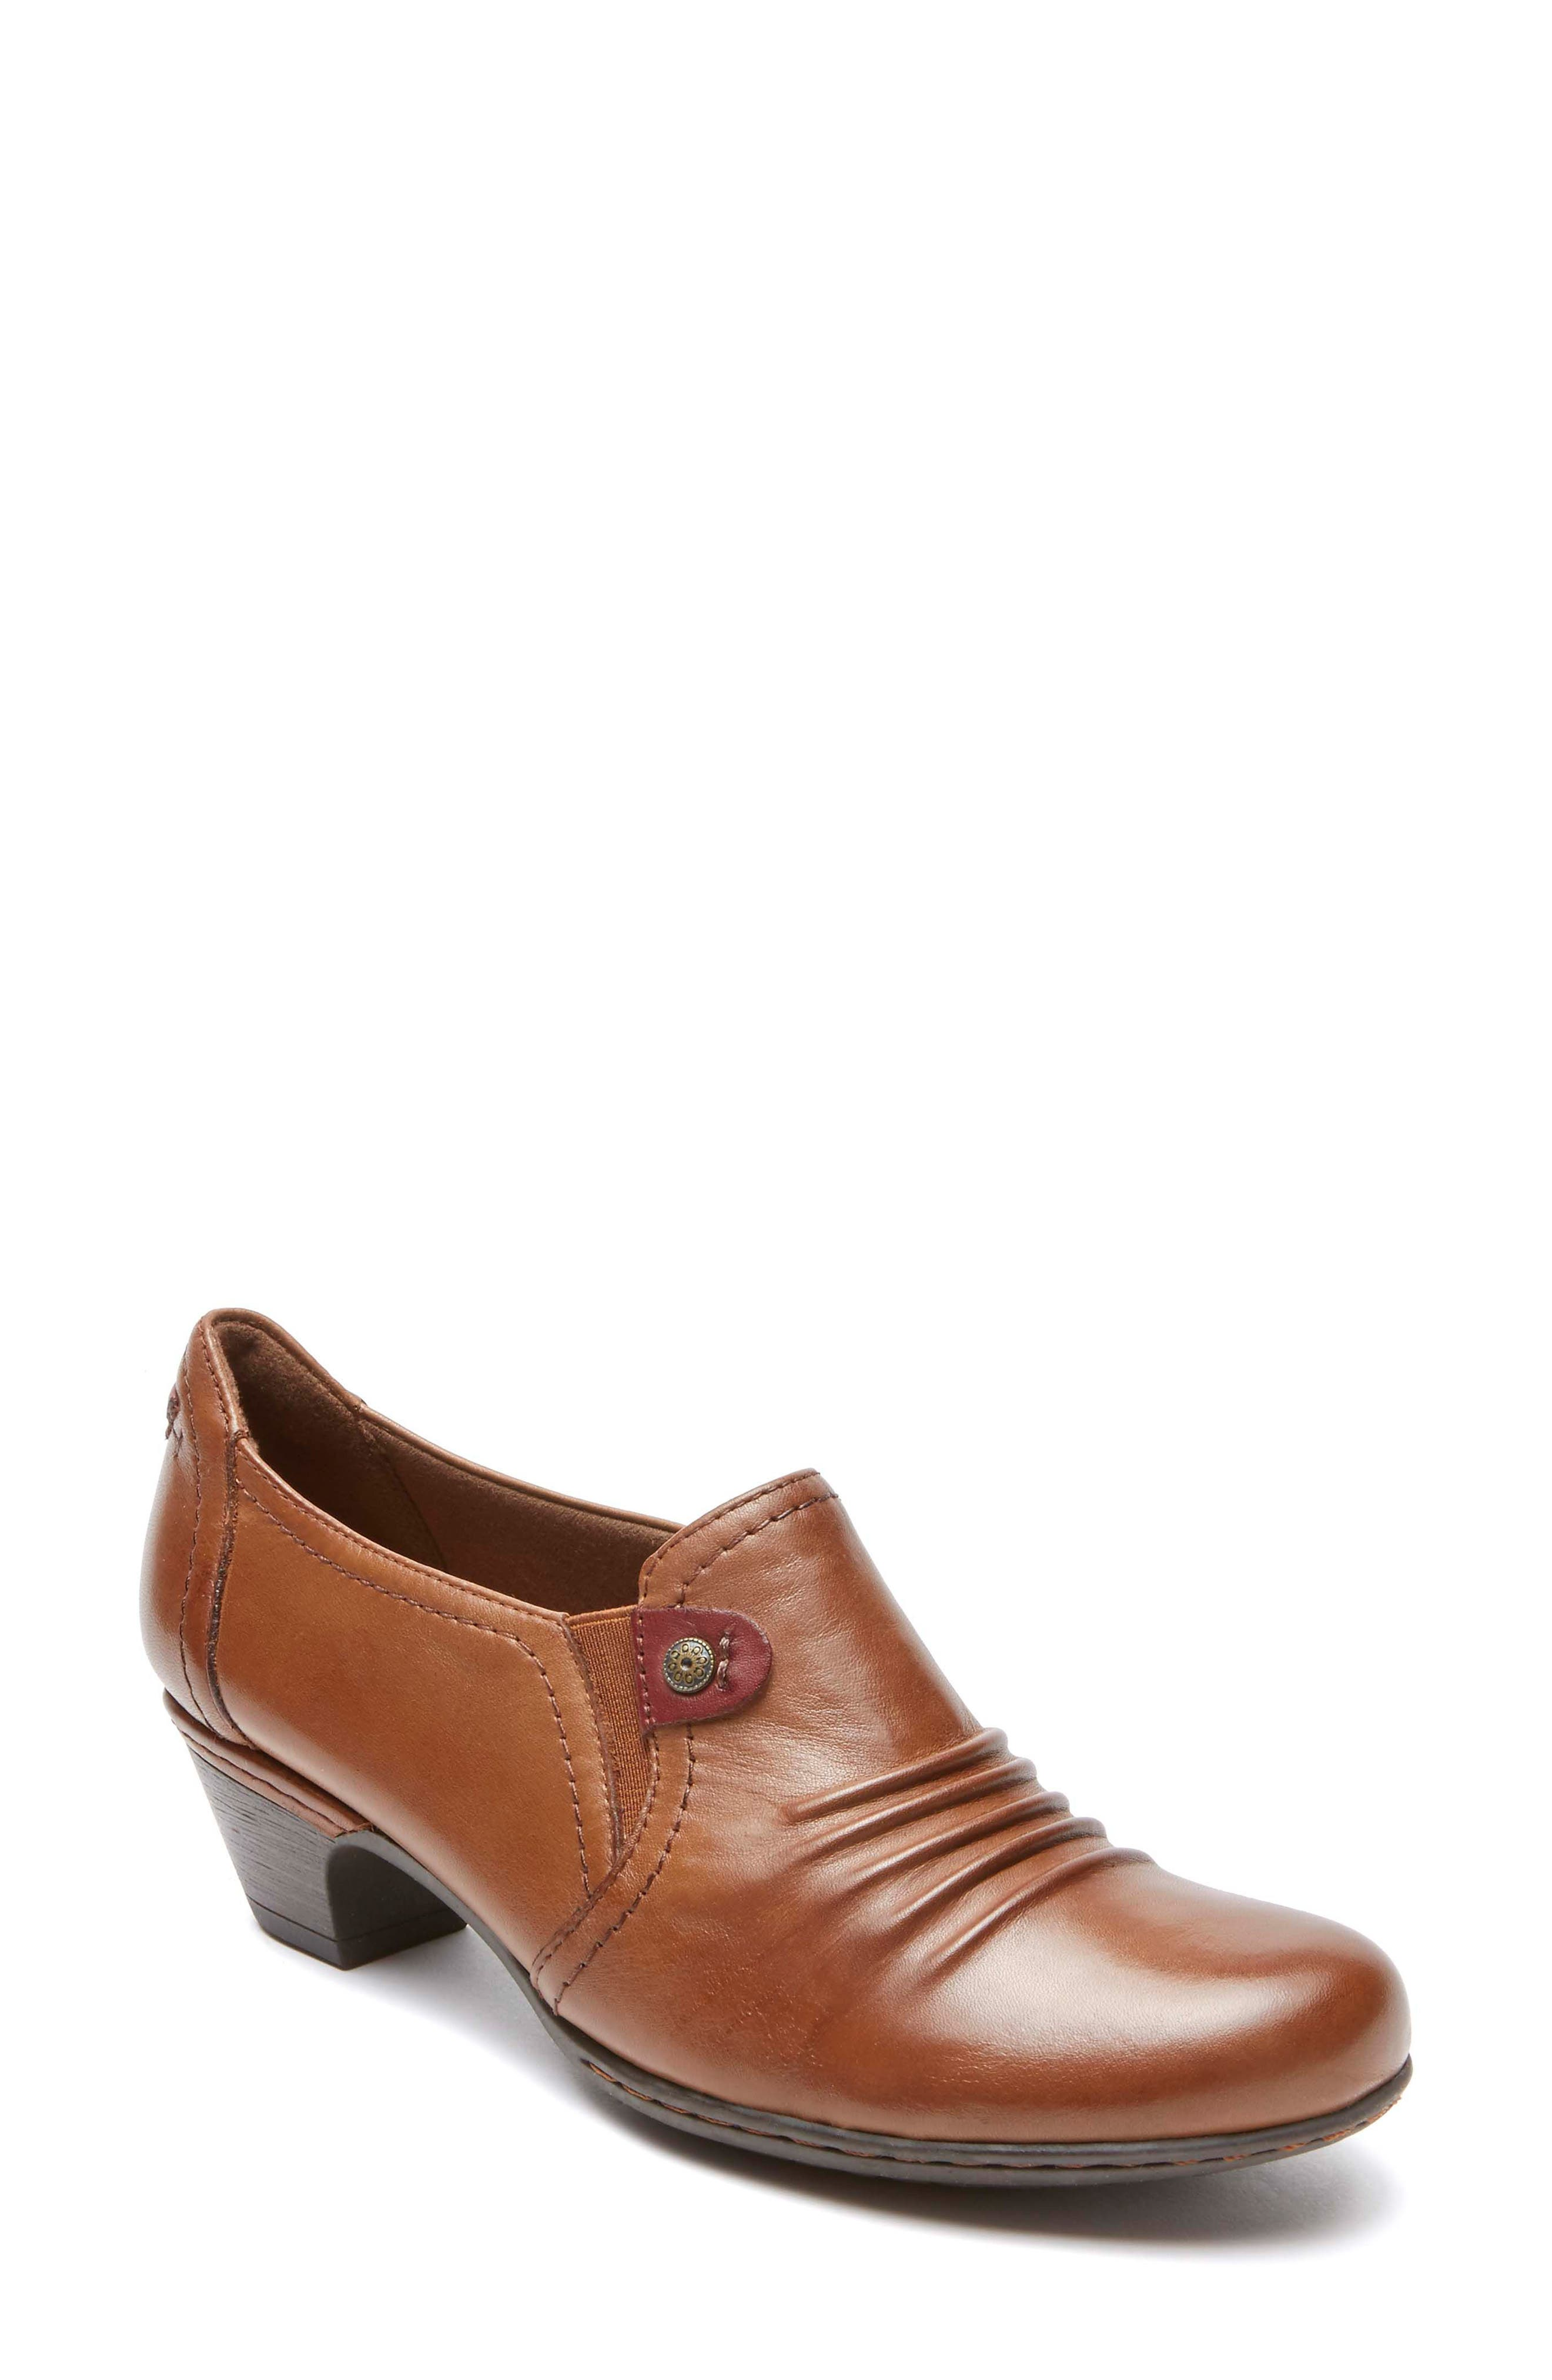 Adele Low Pump,                         Main,                         color, ALMOND LEATHER